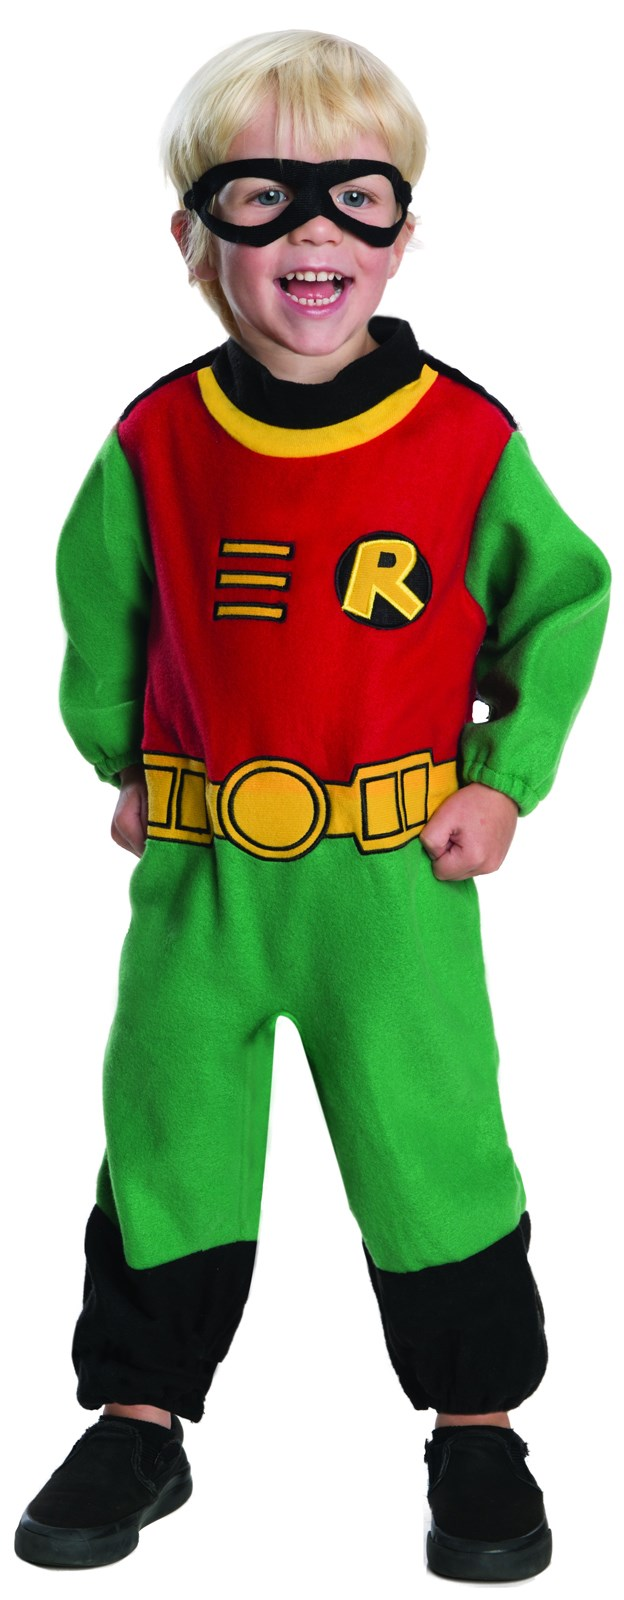 Robin Infant Costume Infant (6-12months)